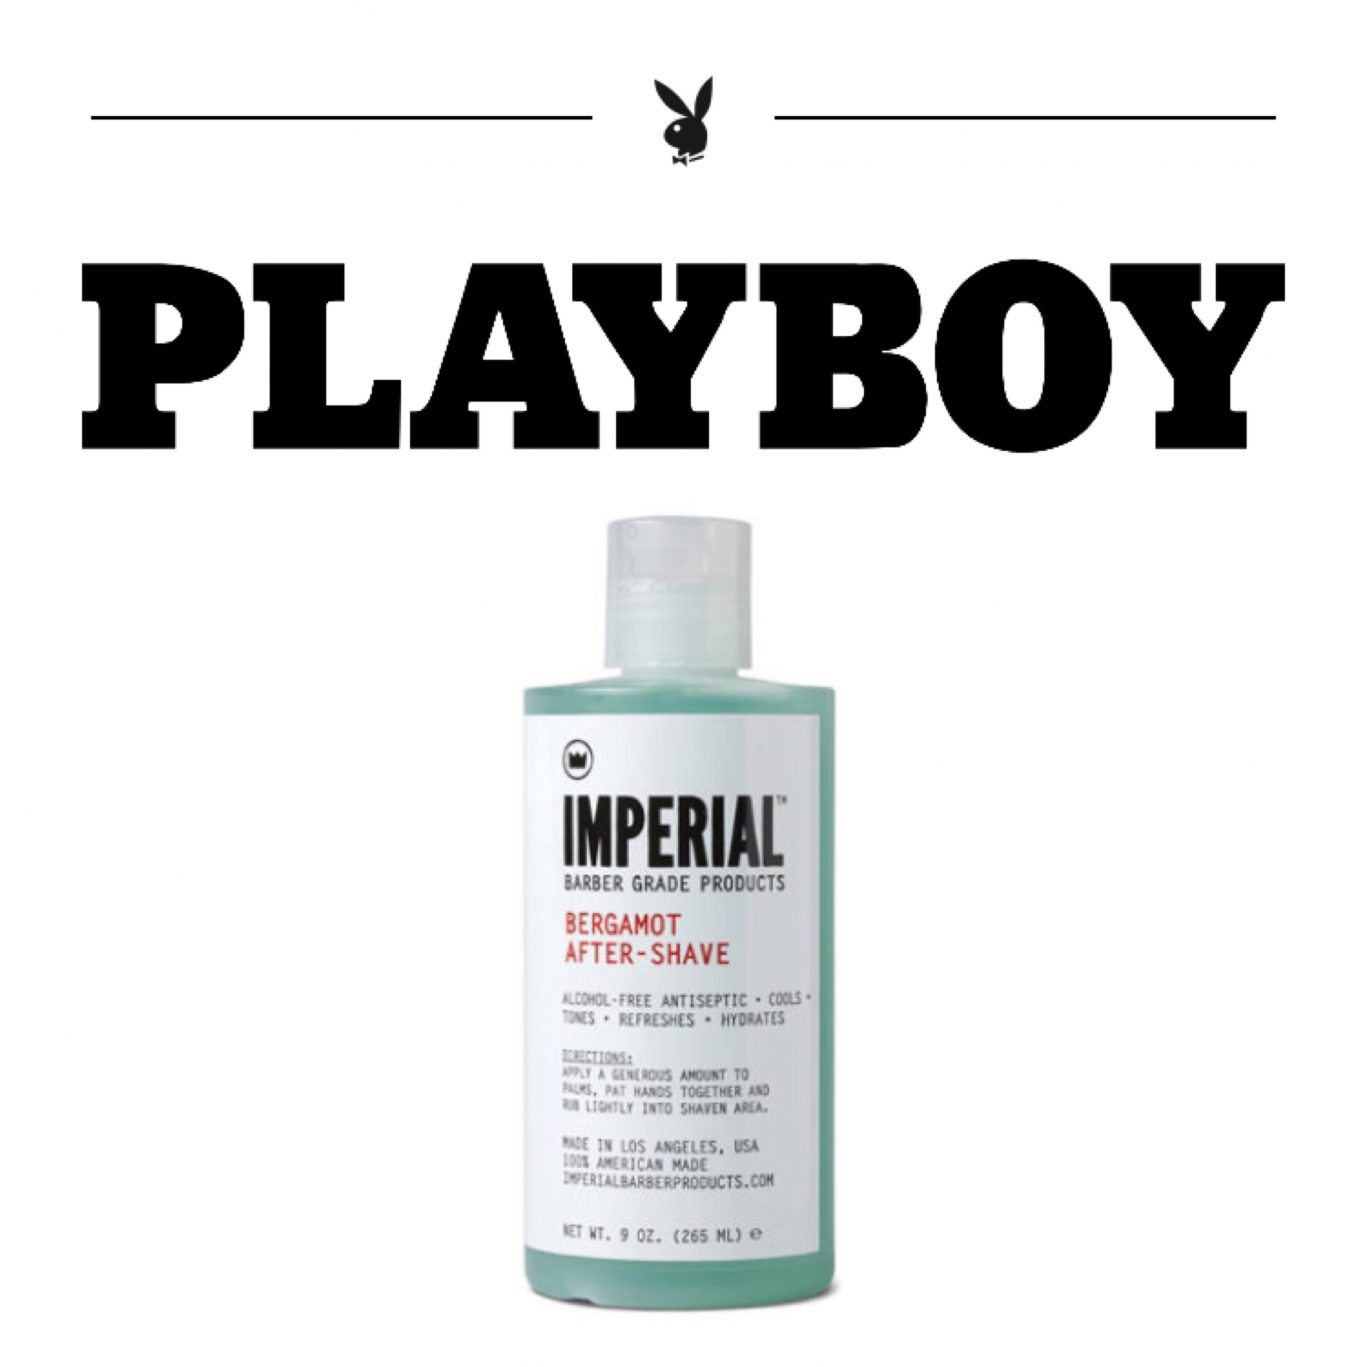 [PLAYBOY] IMPERIAL BARBER PRODUCTS BERGAMOT AFTER-SHAVE